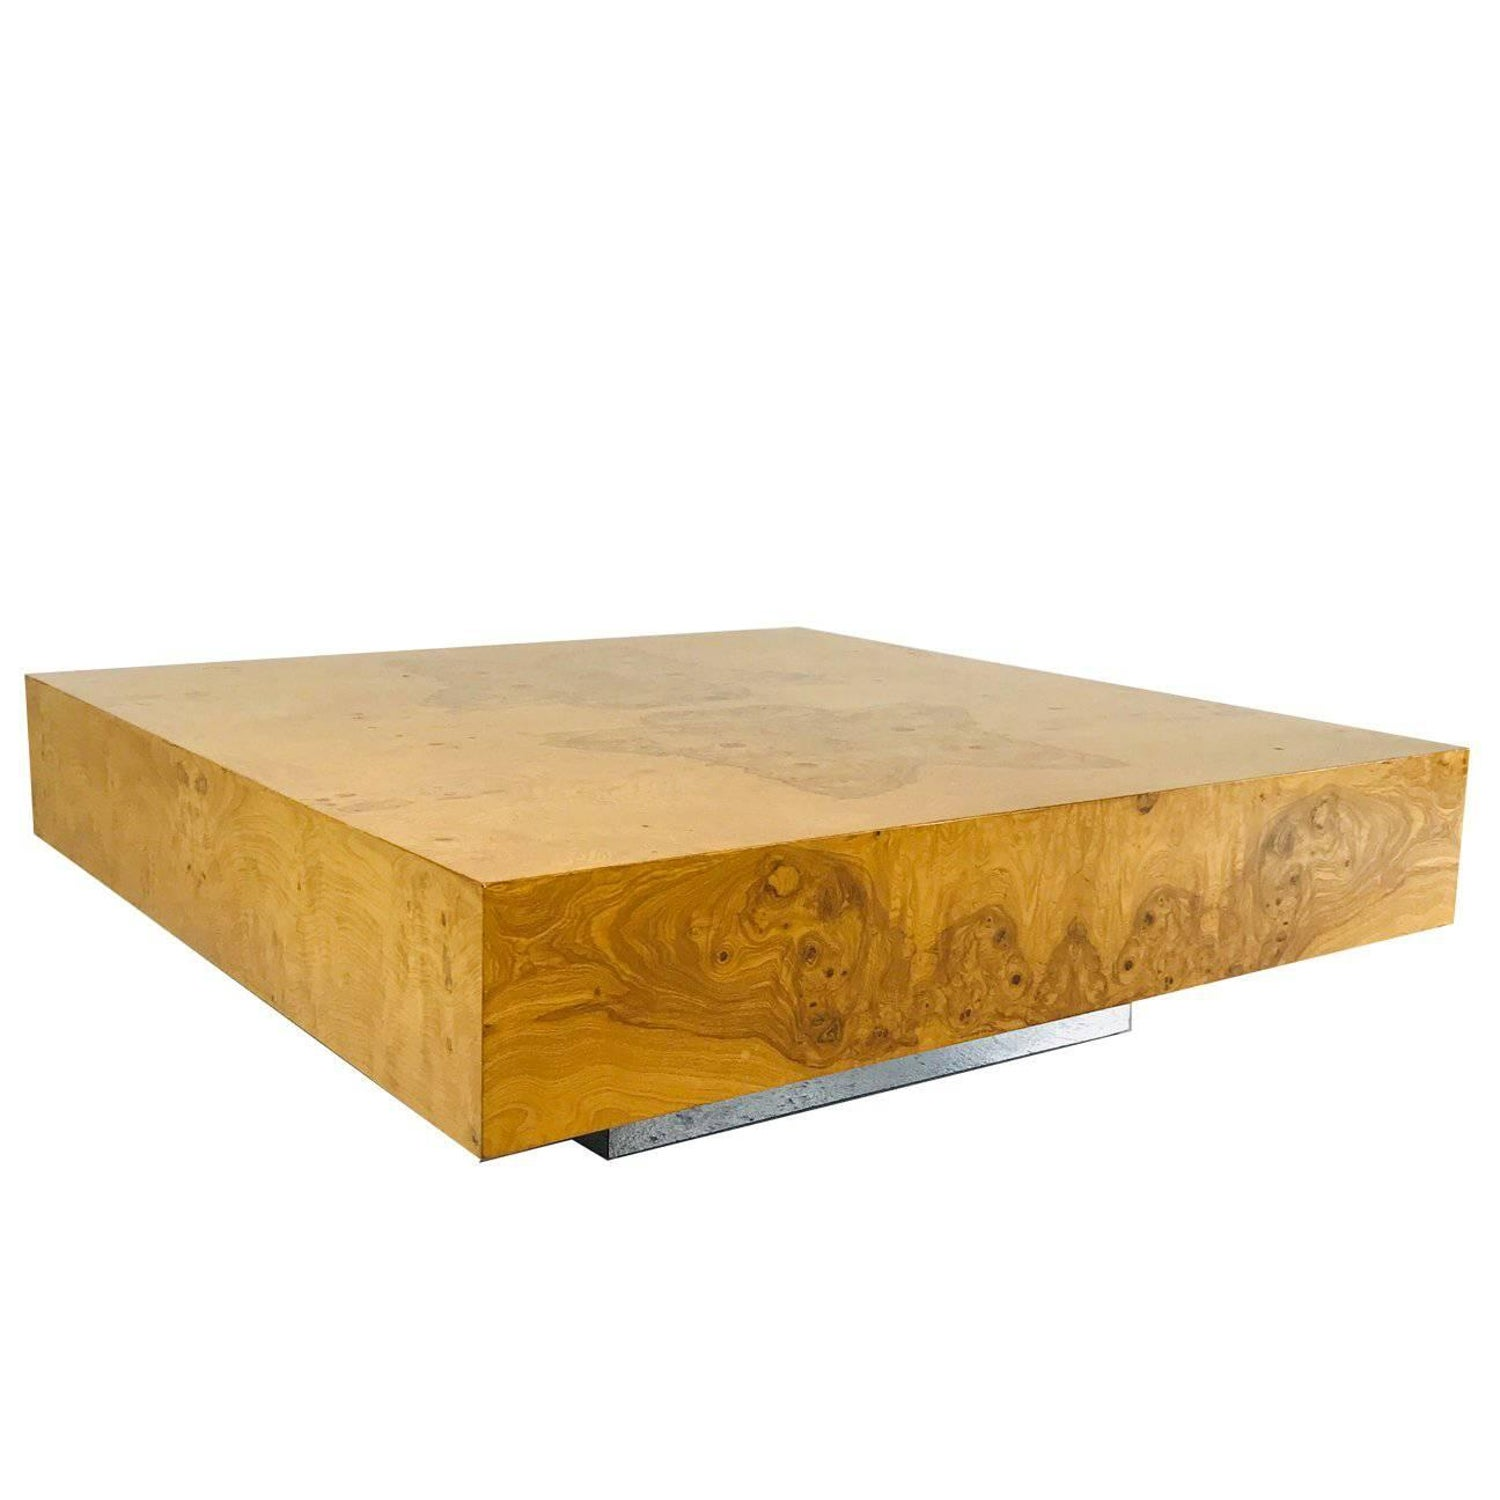 Milo baughman burl wood coffee table with plinth base at 1stdibs